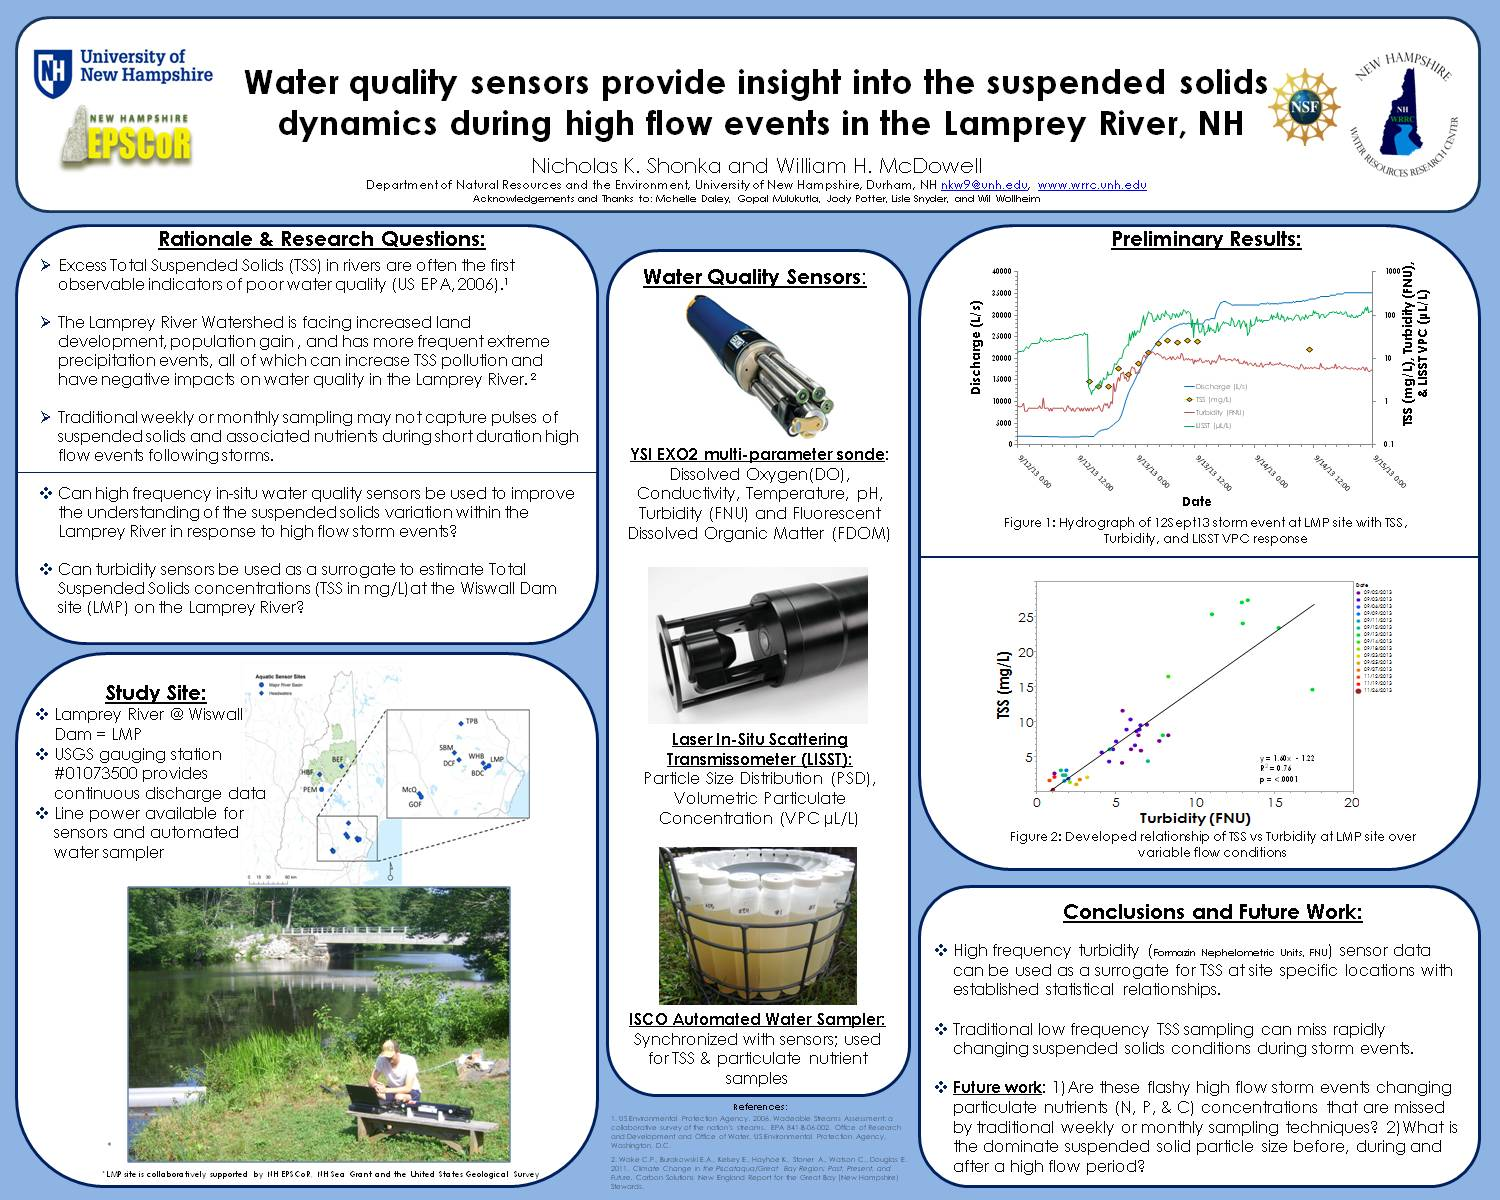 Water Quality Sensors Provide Insight Into The Suspended Solids  Dynamics During High Flow Events In The Lamprey River, Nh  by shonka